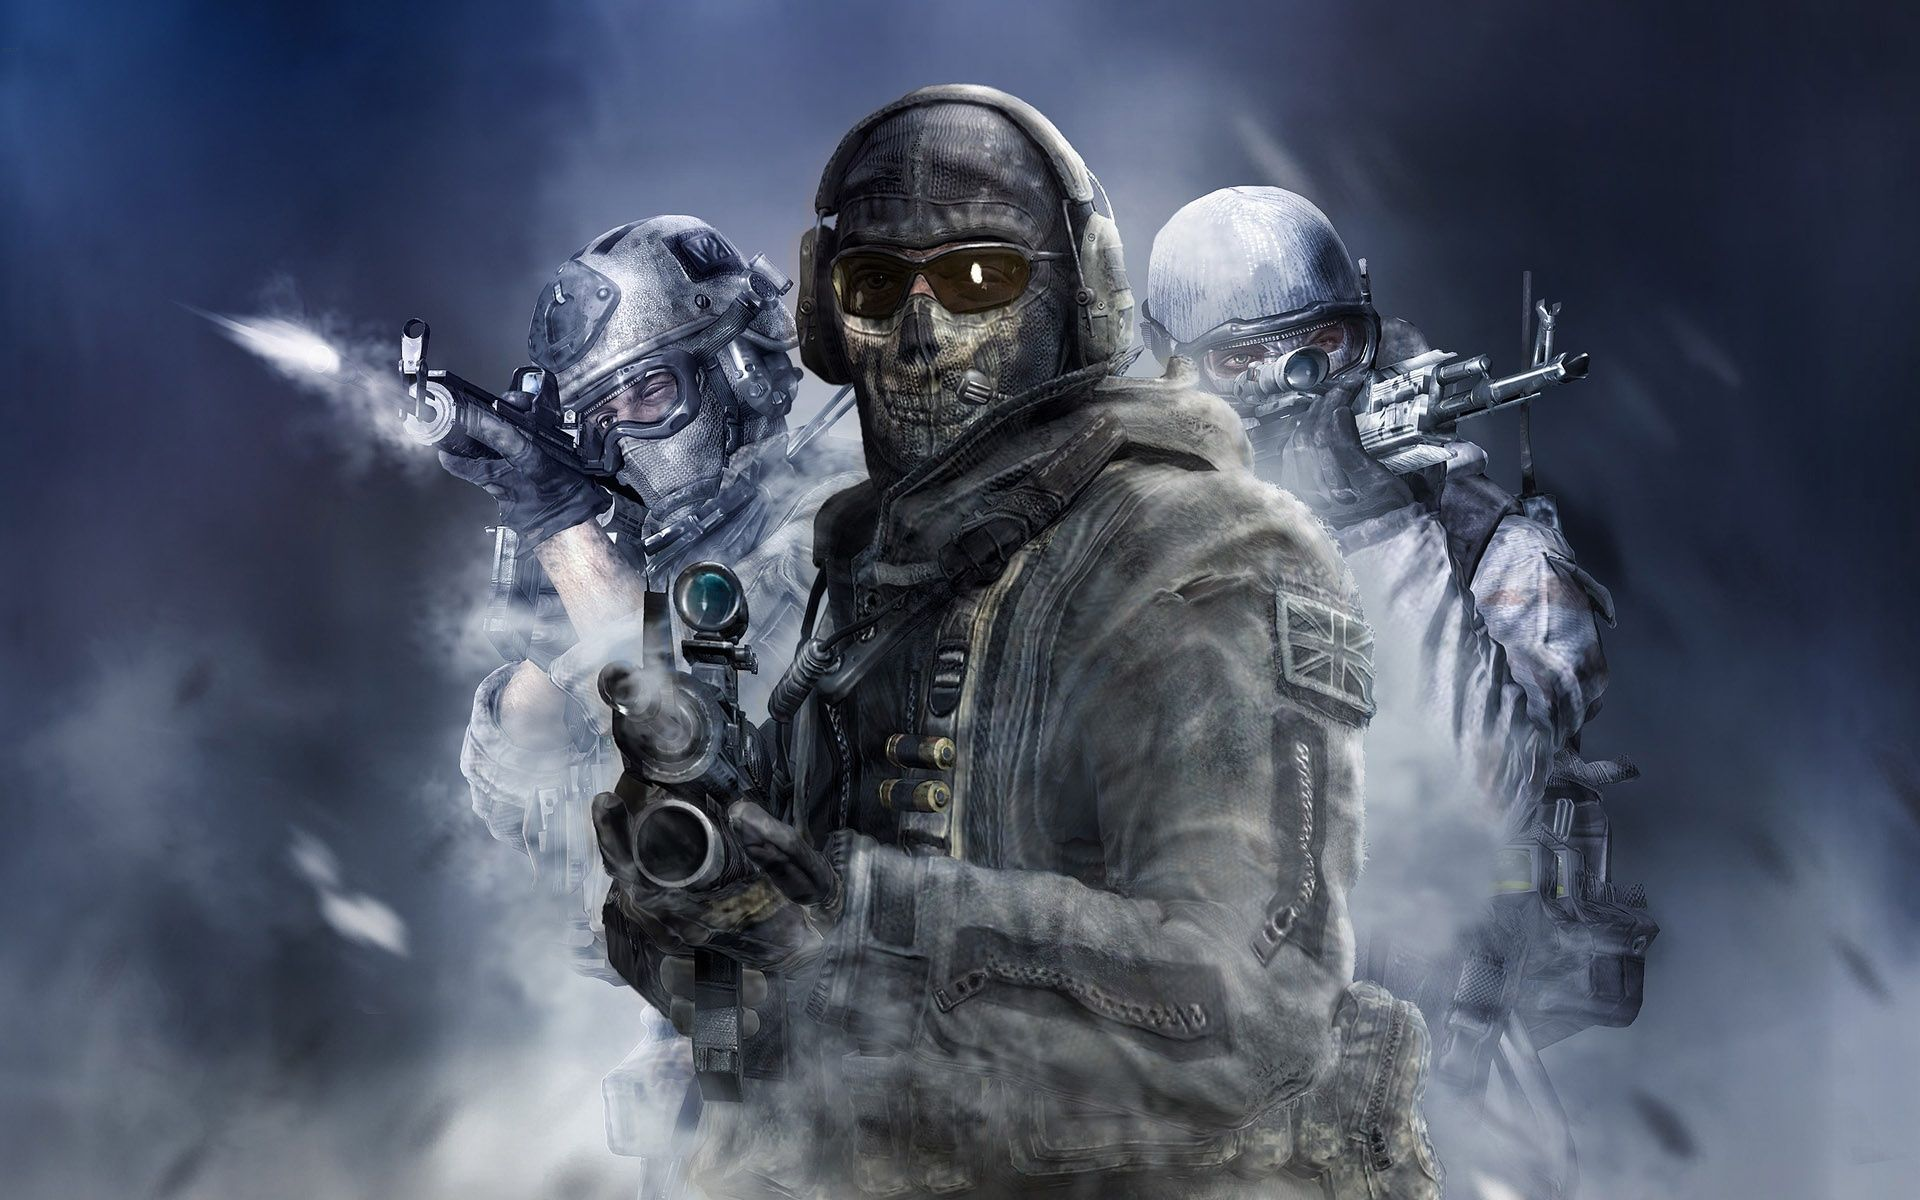 3d Wallpaper Call Of Duty Wallpapers For Free Download About Call Of Duty Black Call Of Duty Ghosts Call Of Duty